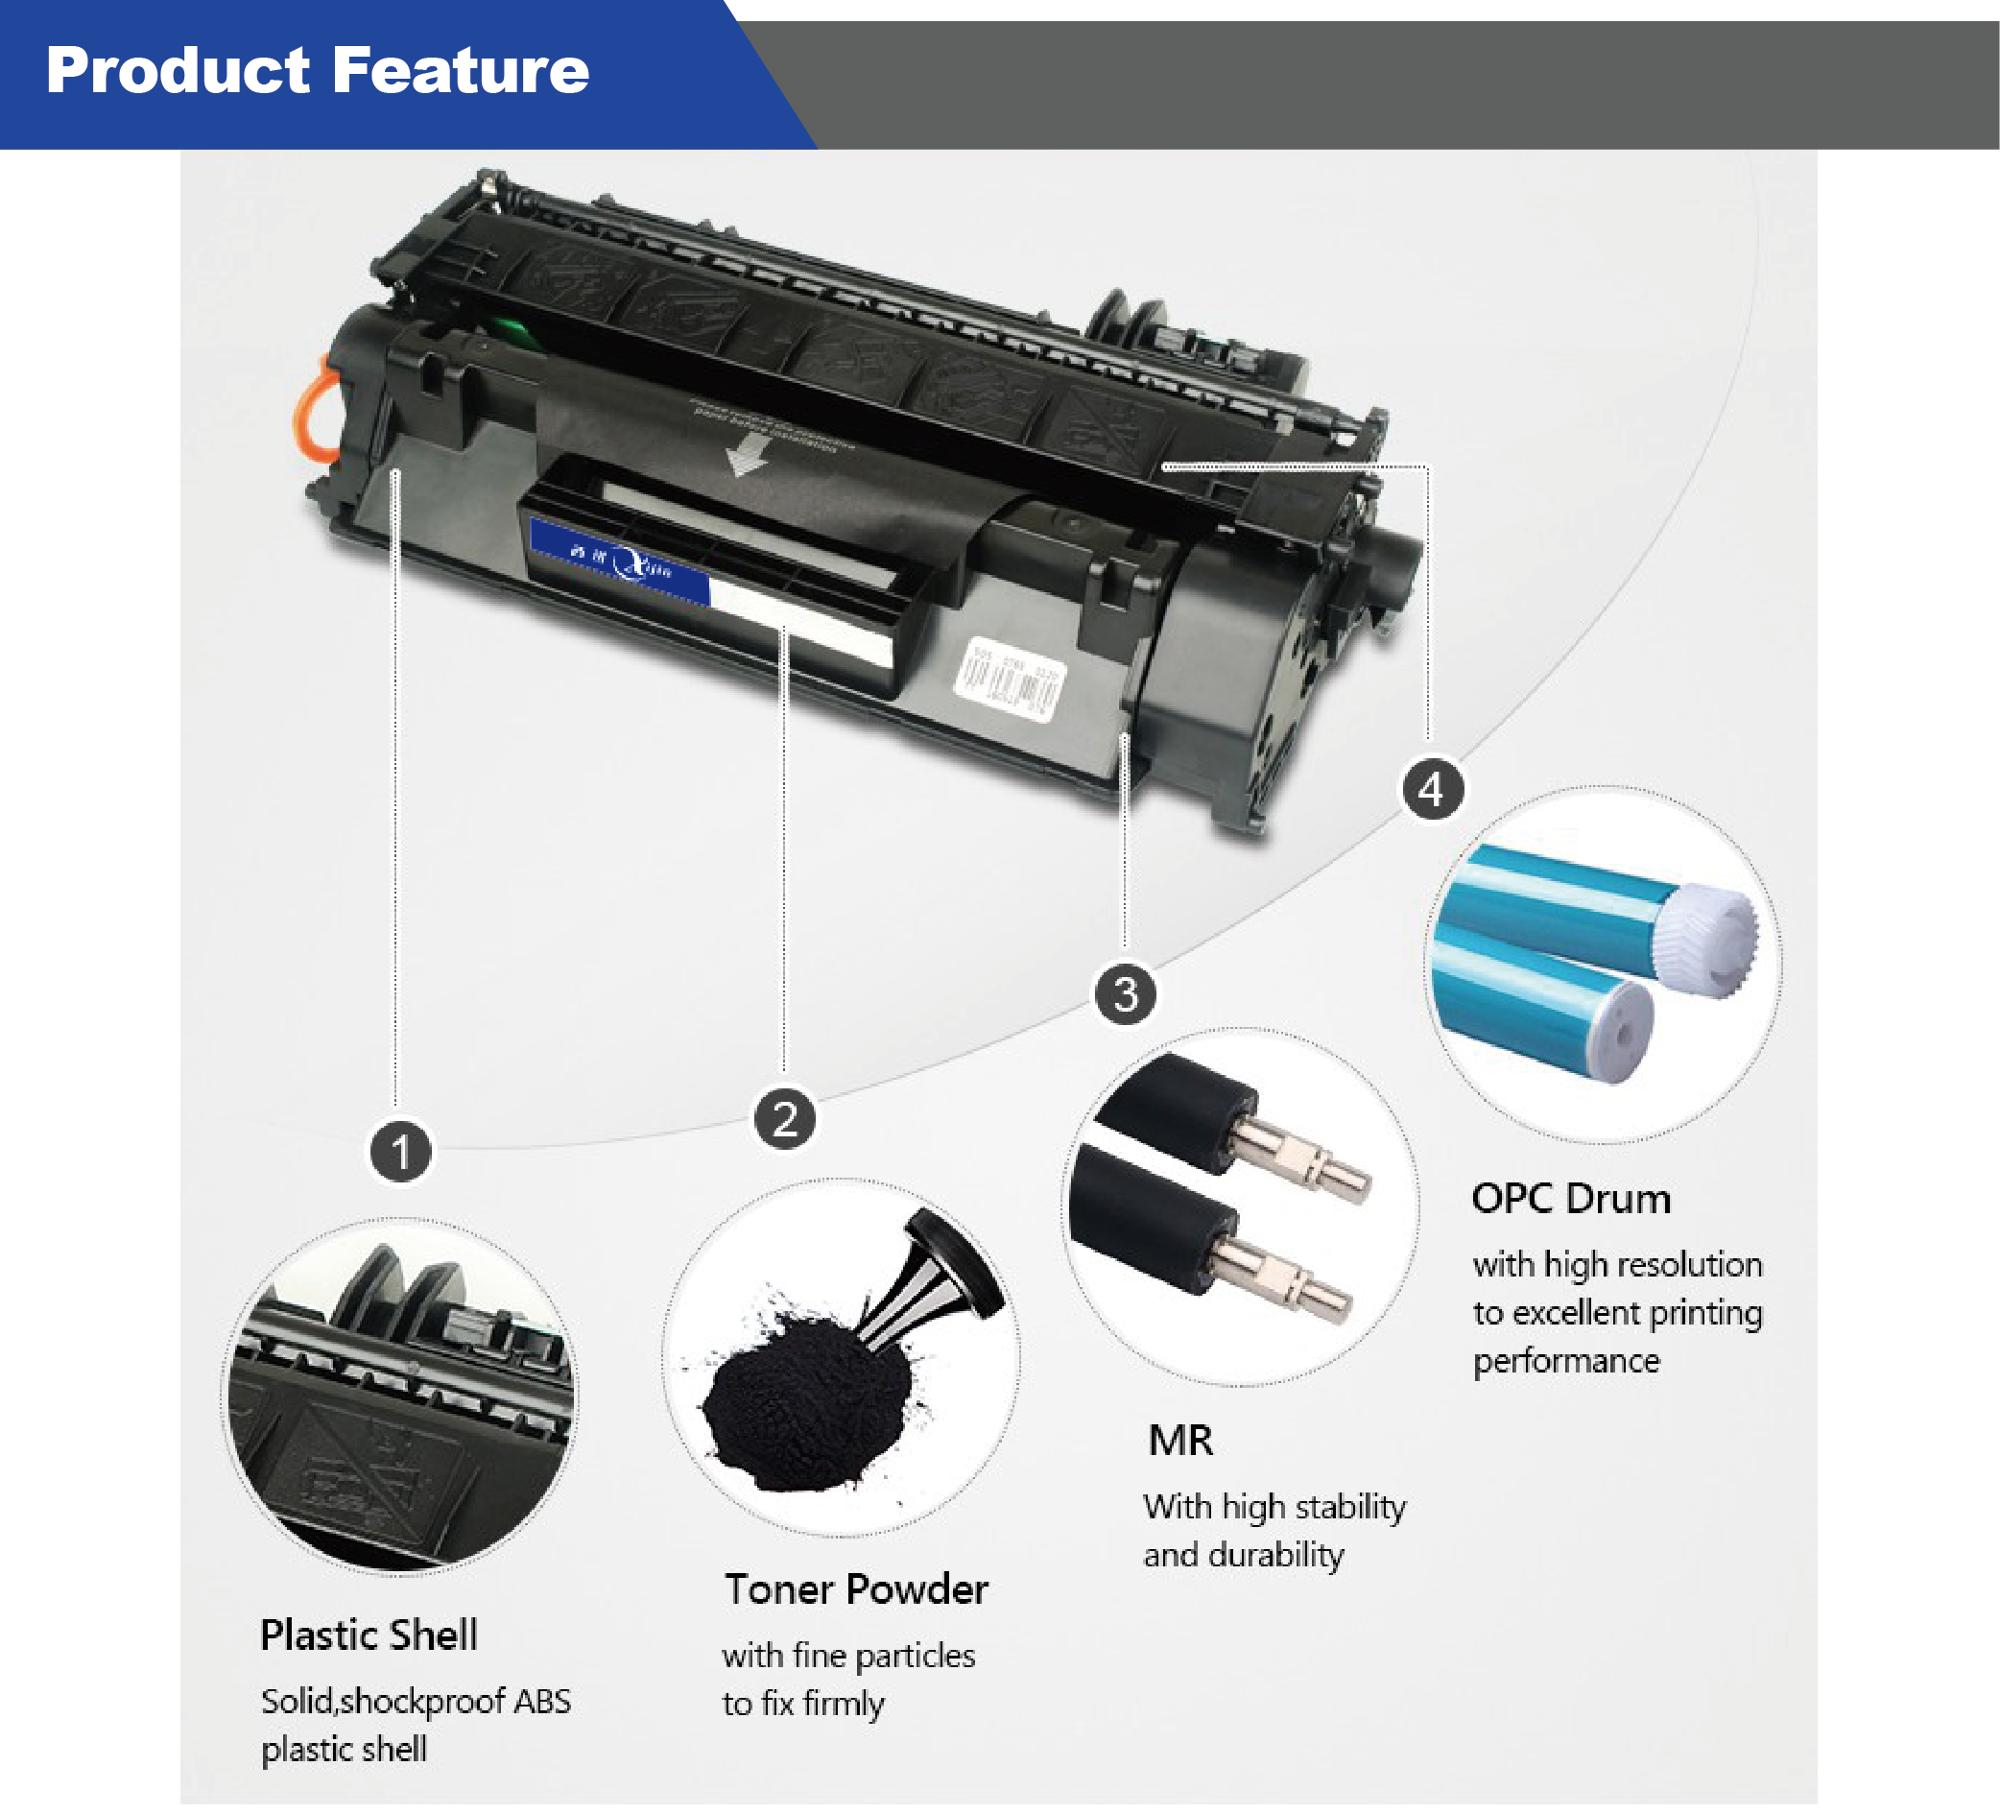 Ce285a 85a Compatible Toner Cartridge For Hp Printer Laserjet P1100 Opc Drum P1102 Katrid Lead Time Shipped In 3 5 Working Days After Payment